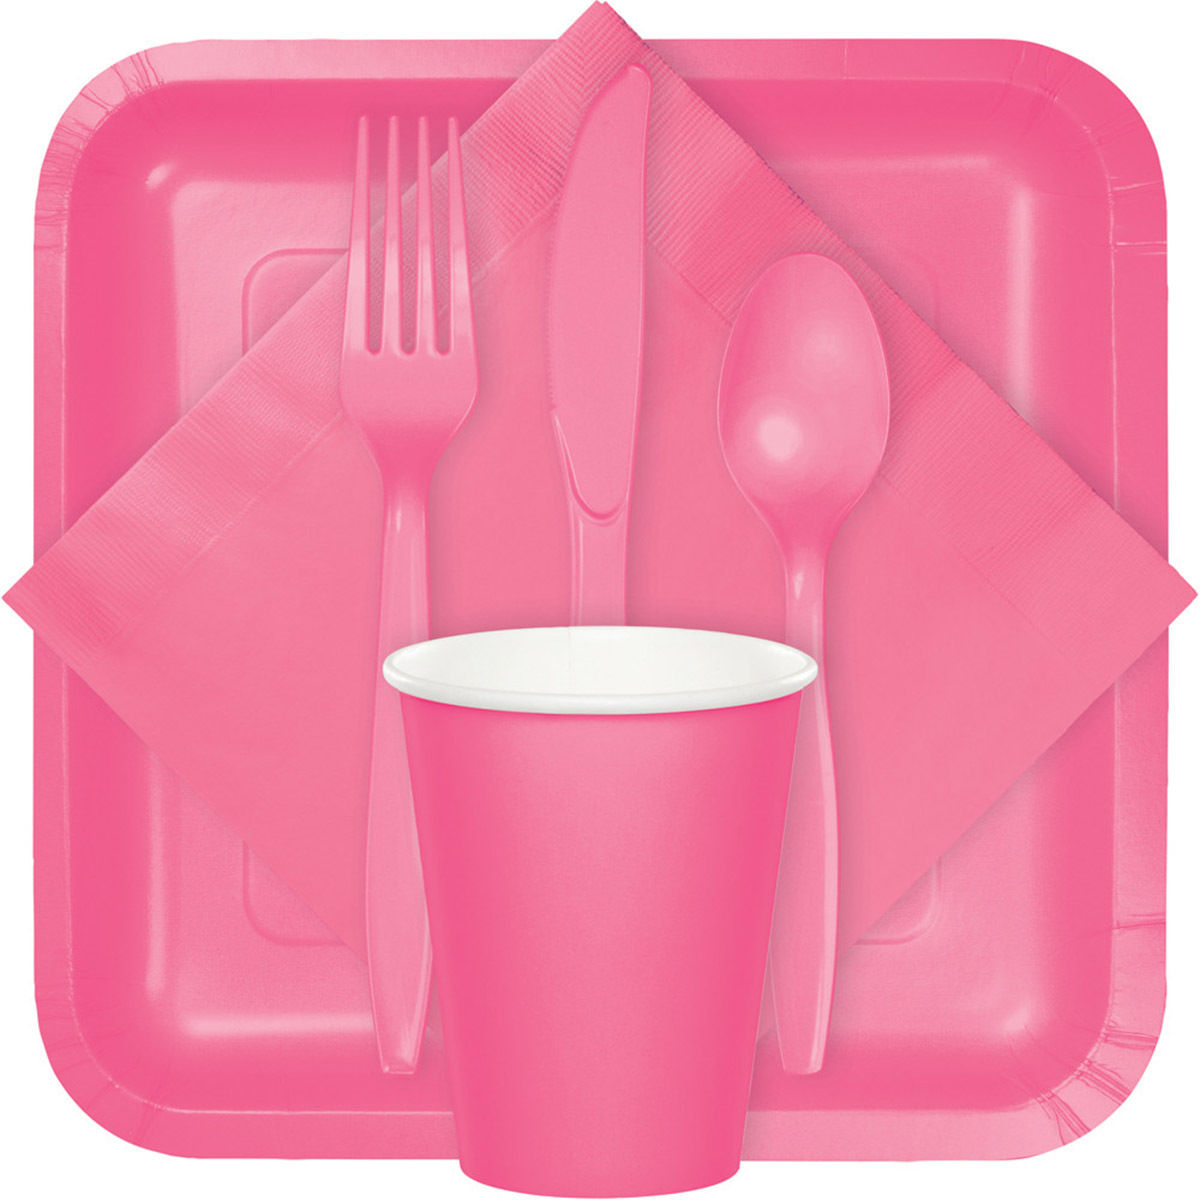 hot pink plates